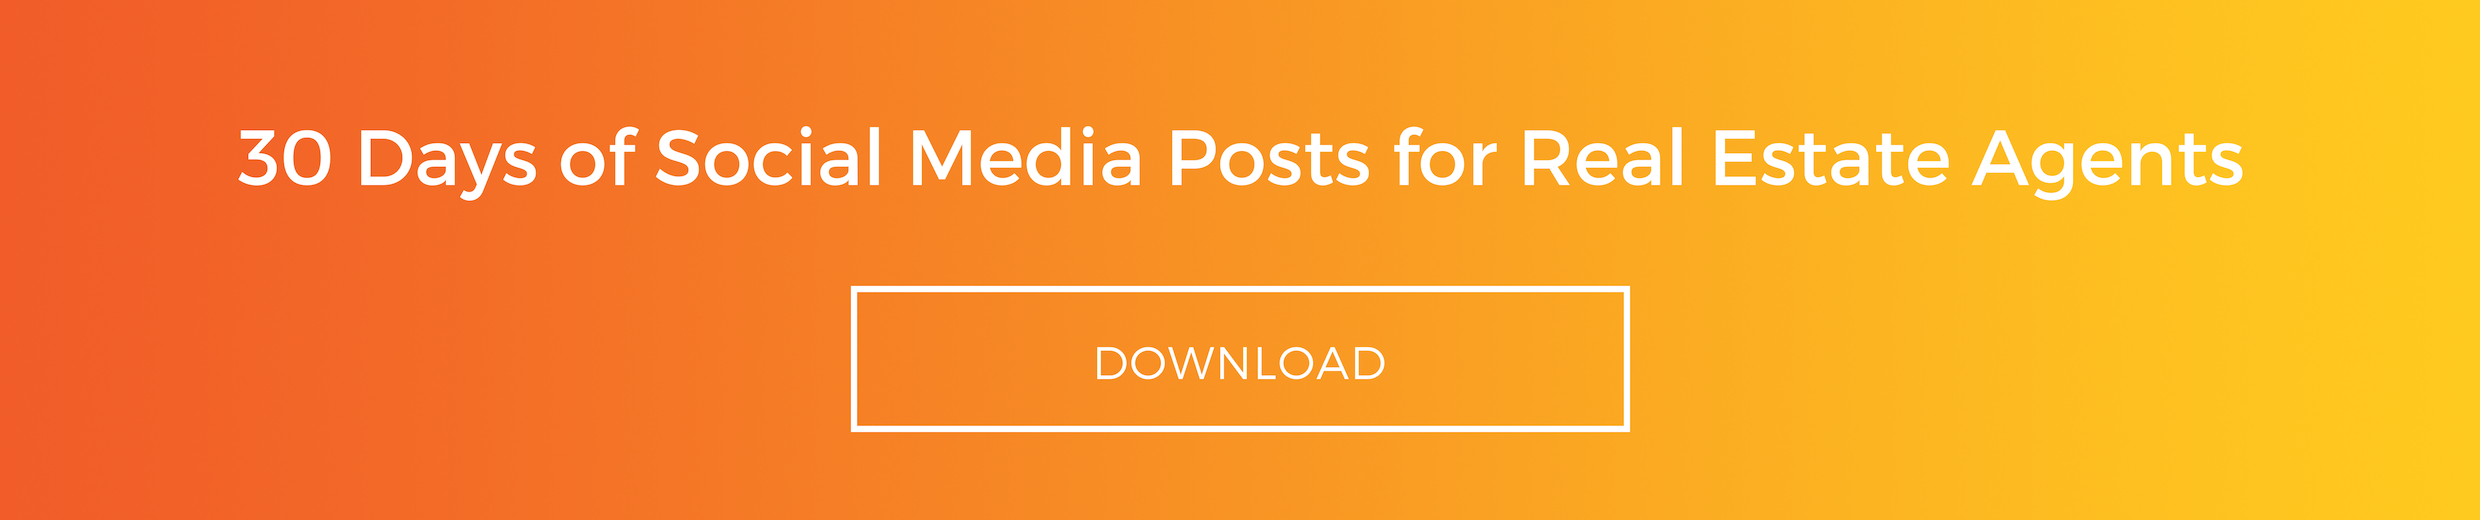 Download the ultimate social media content strategy